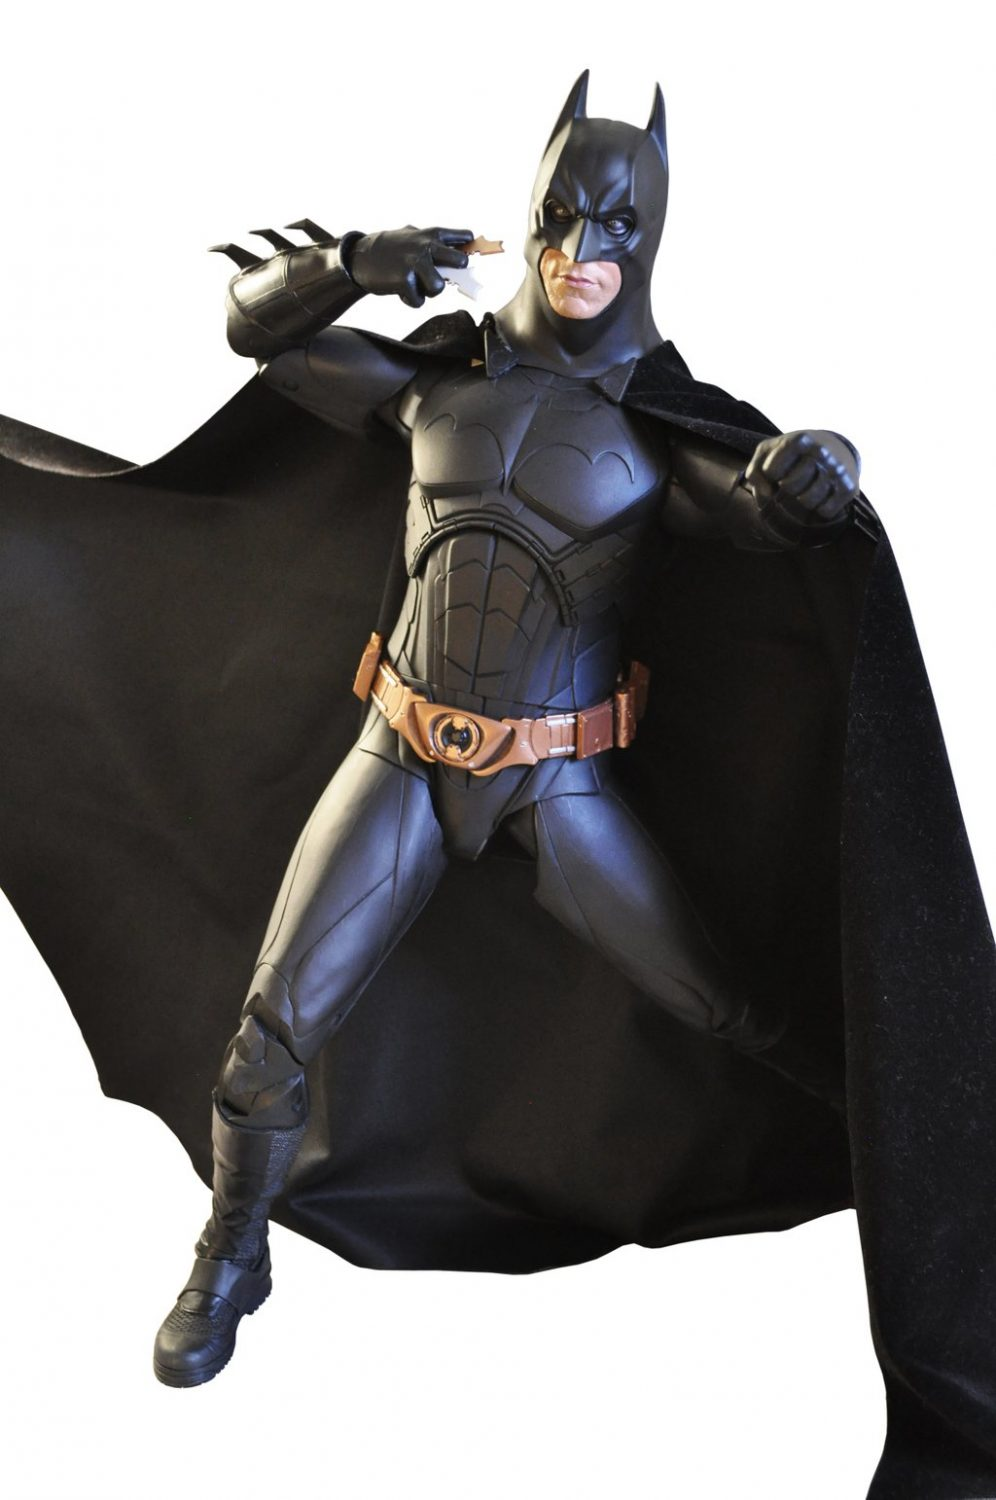 NECA Toys Releases New Image Of Upcoming Batman Begins 1/4″ Scale Figure